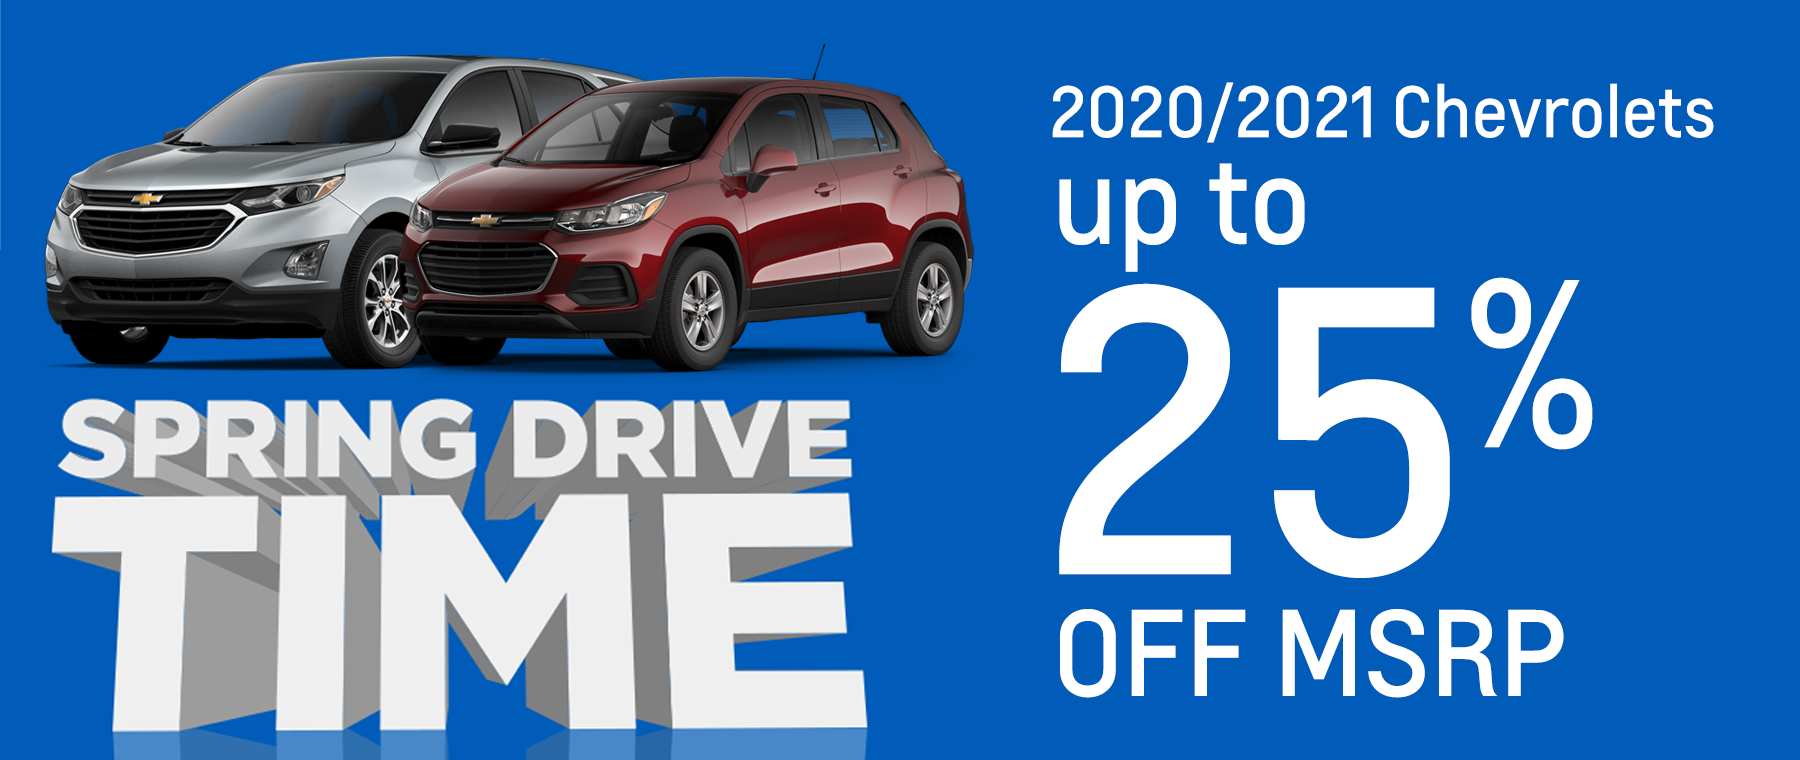 Chevy-Percent-Off-April-2021-Display1800X760